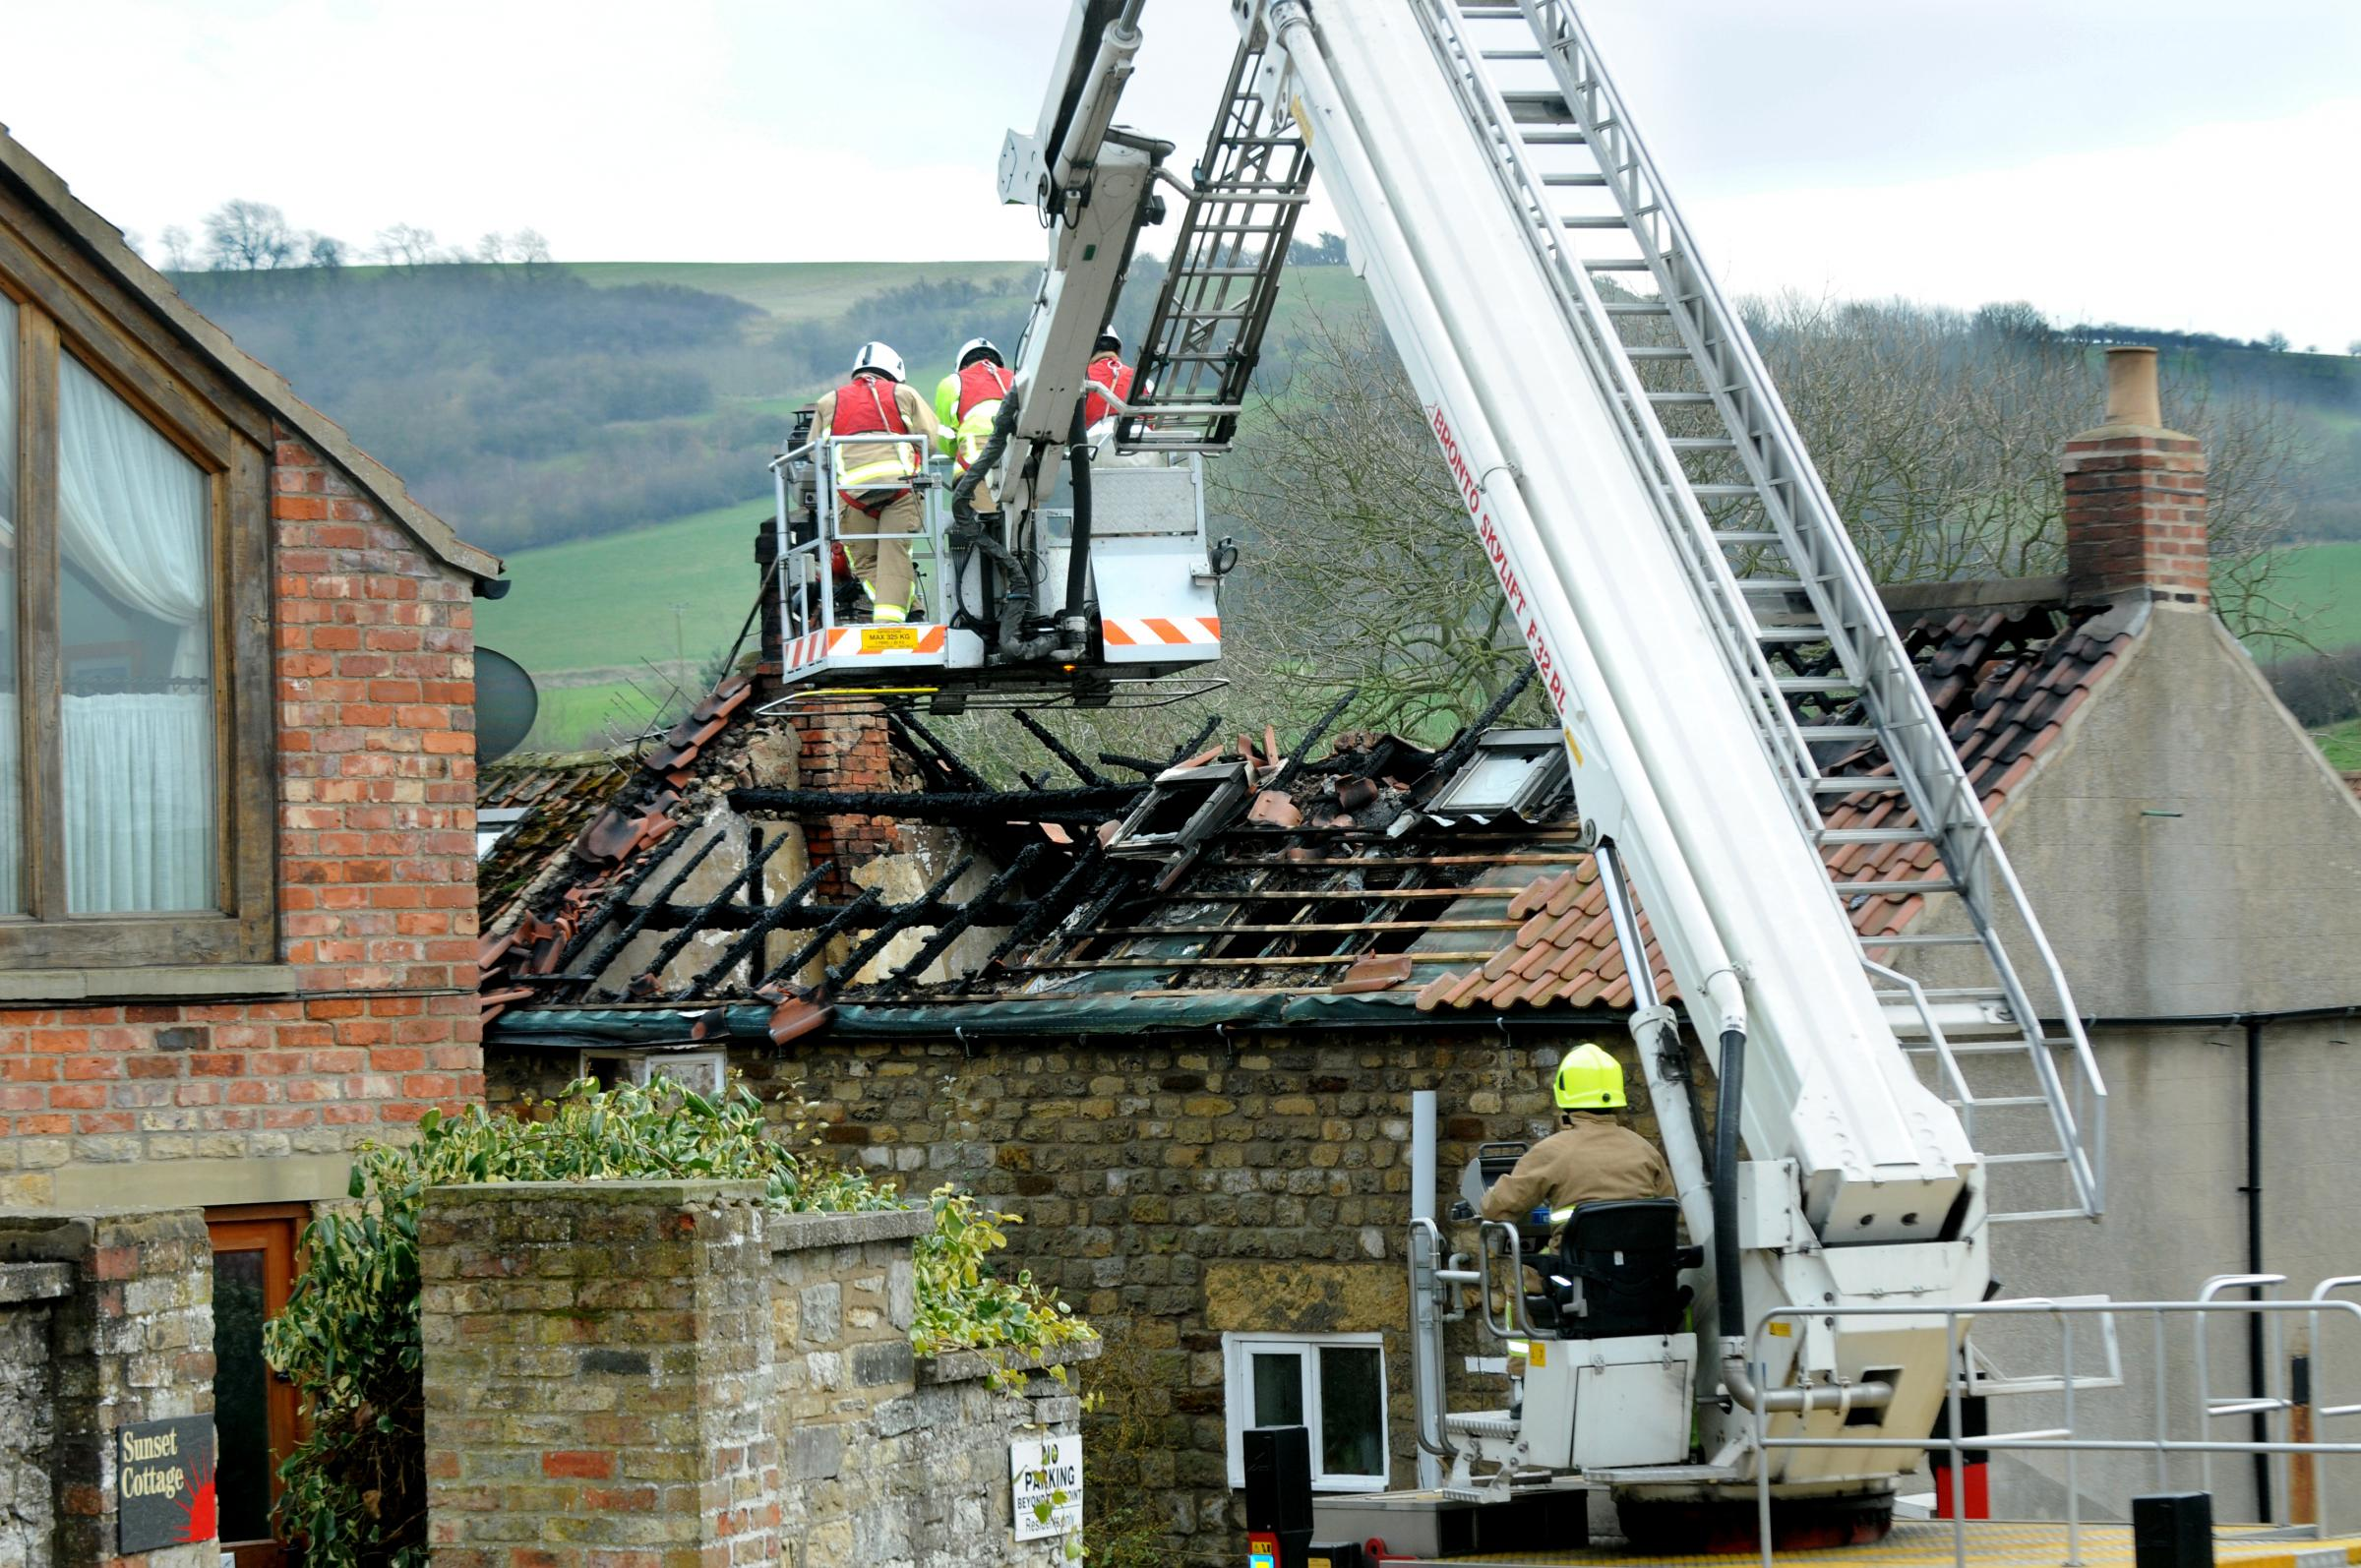 Fire guts rural cottage - Family tell of devastation - Charger may have been cause